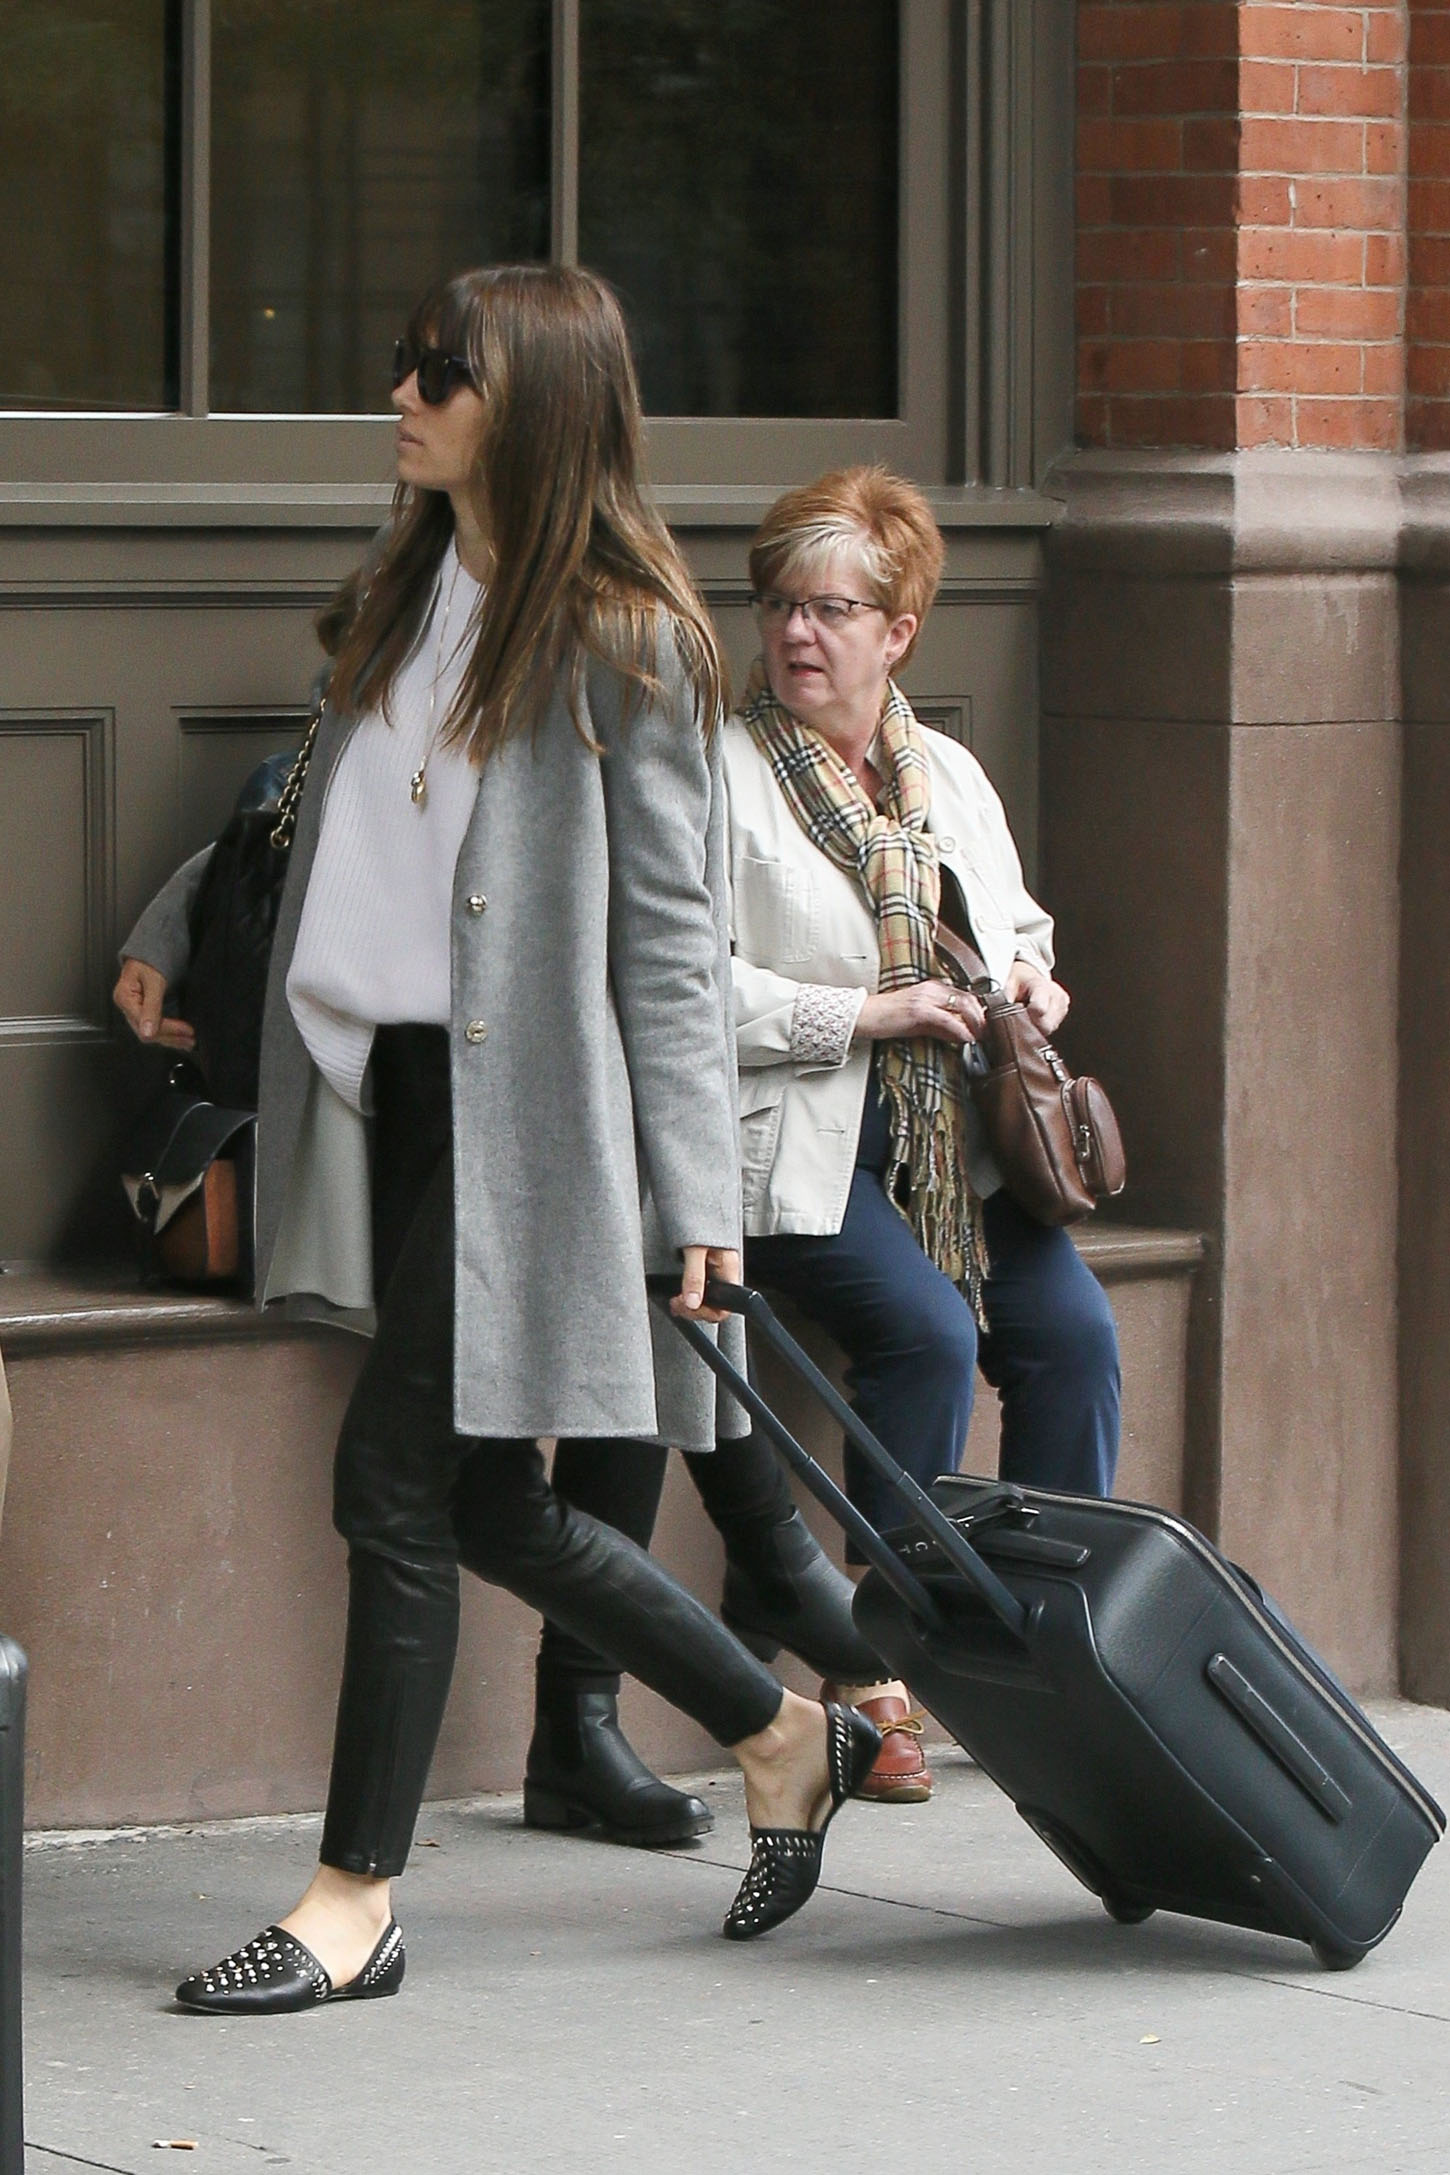 New York, NY  - Jessica Biel was spotted carrying her luggage as she arrived at her NYC pad this afternoon wearing a gray maxi cardigan over a white sweater, black leather skinny trousers and studded flats.  Pictured: Jessica Biel    *UK Clients - Pictures Containing Children Please Pixelate Face Prior To Publication*, Image: 352829246, License: Rights-managed, Restrictions: , Model Release: no, Credit line: Profimedia, AKM-GSI